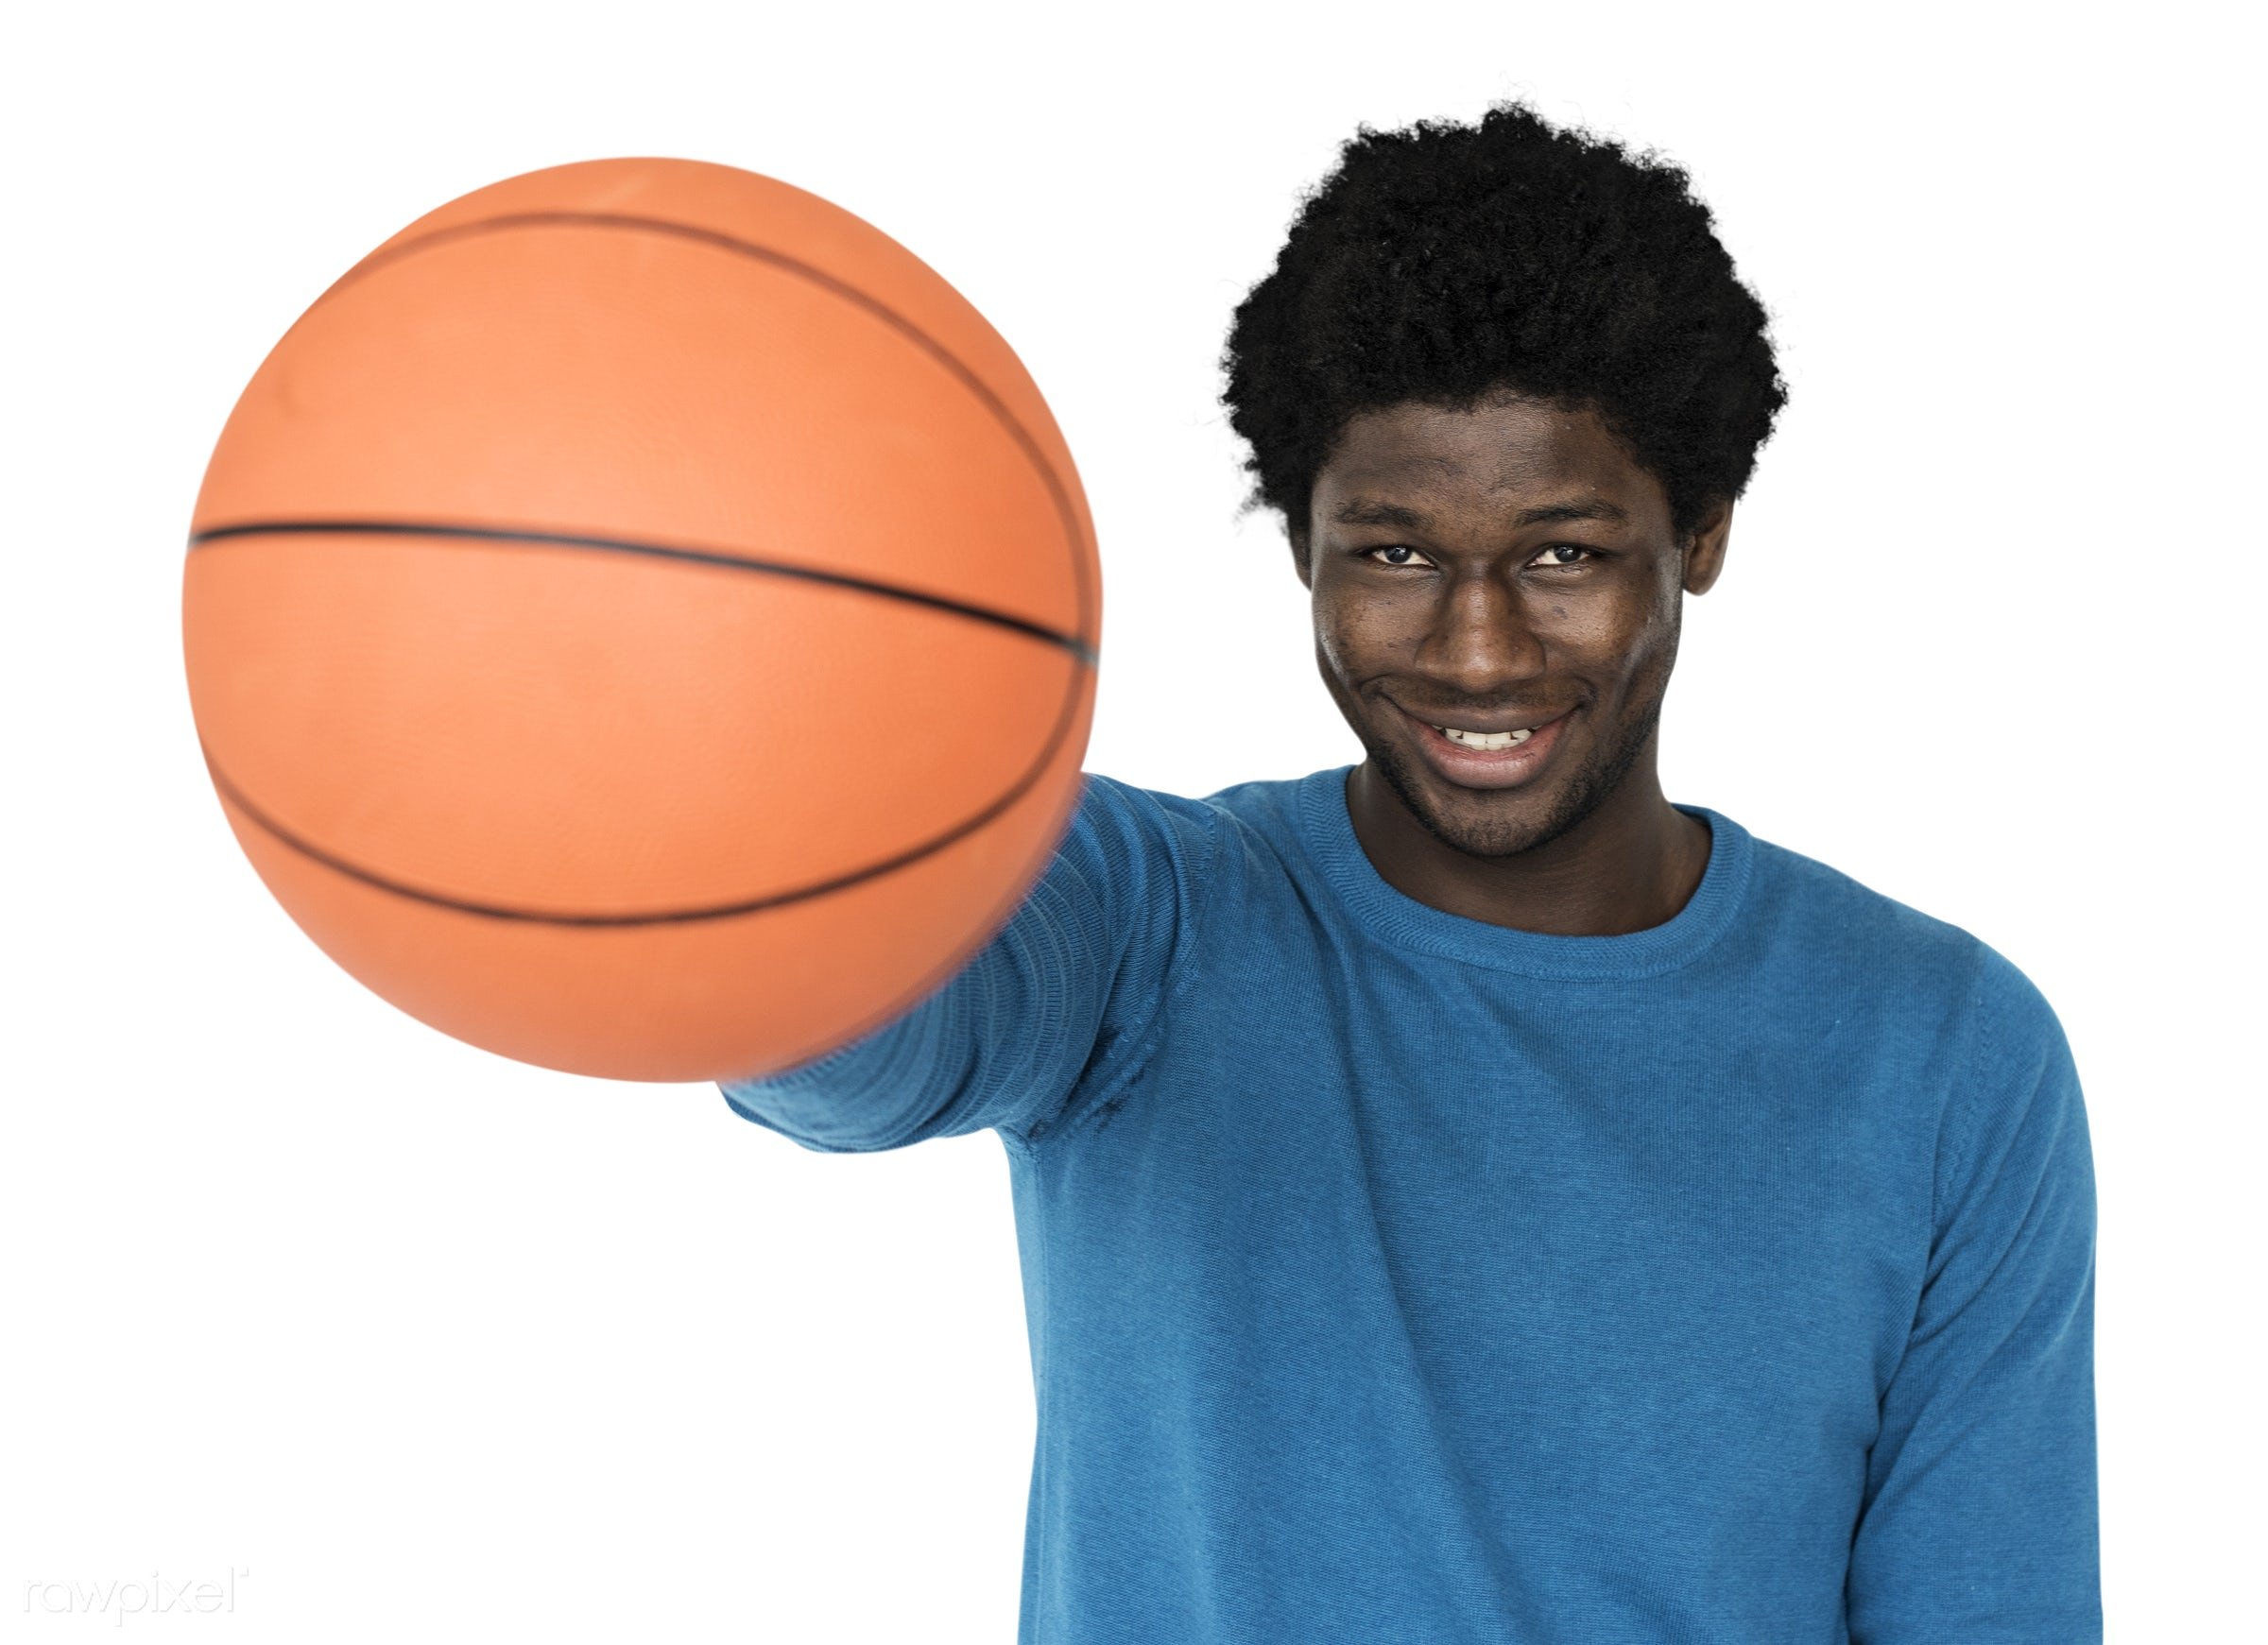 expression, basketball, person, player, isolated on white, recreation, people, training, man, activity, athlete, black,...